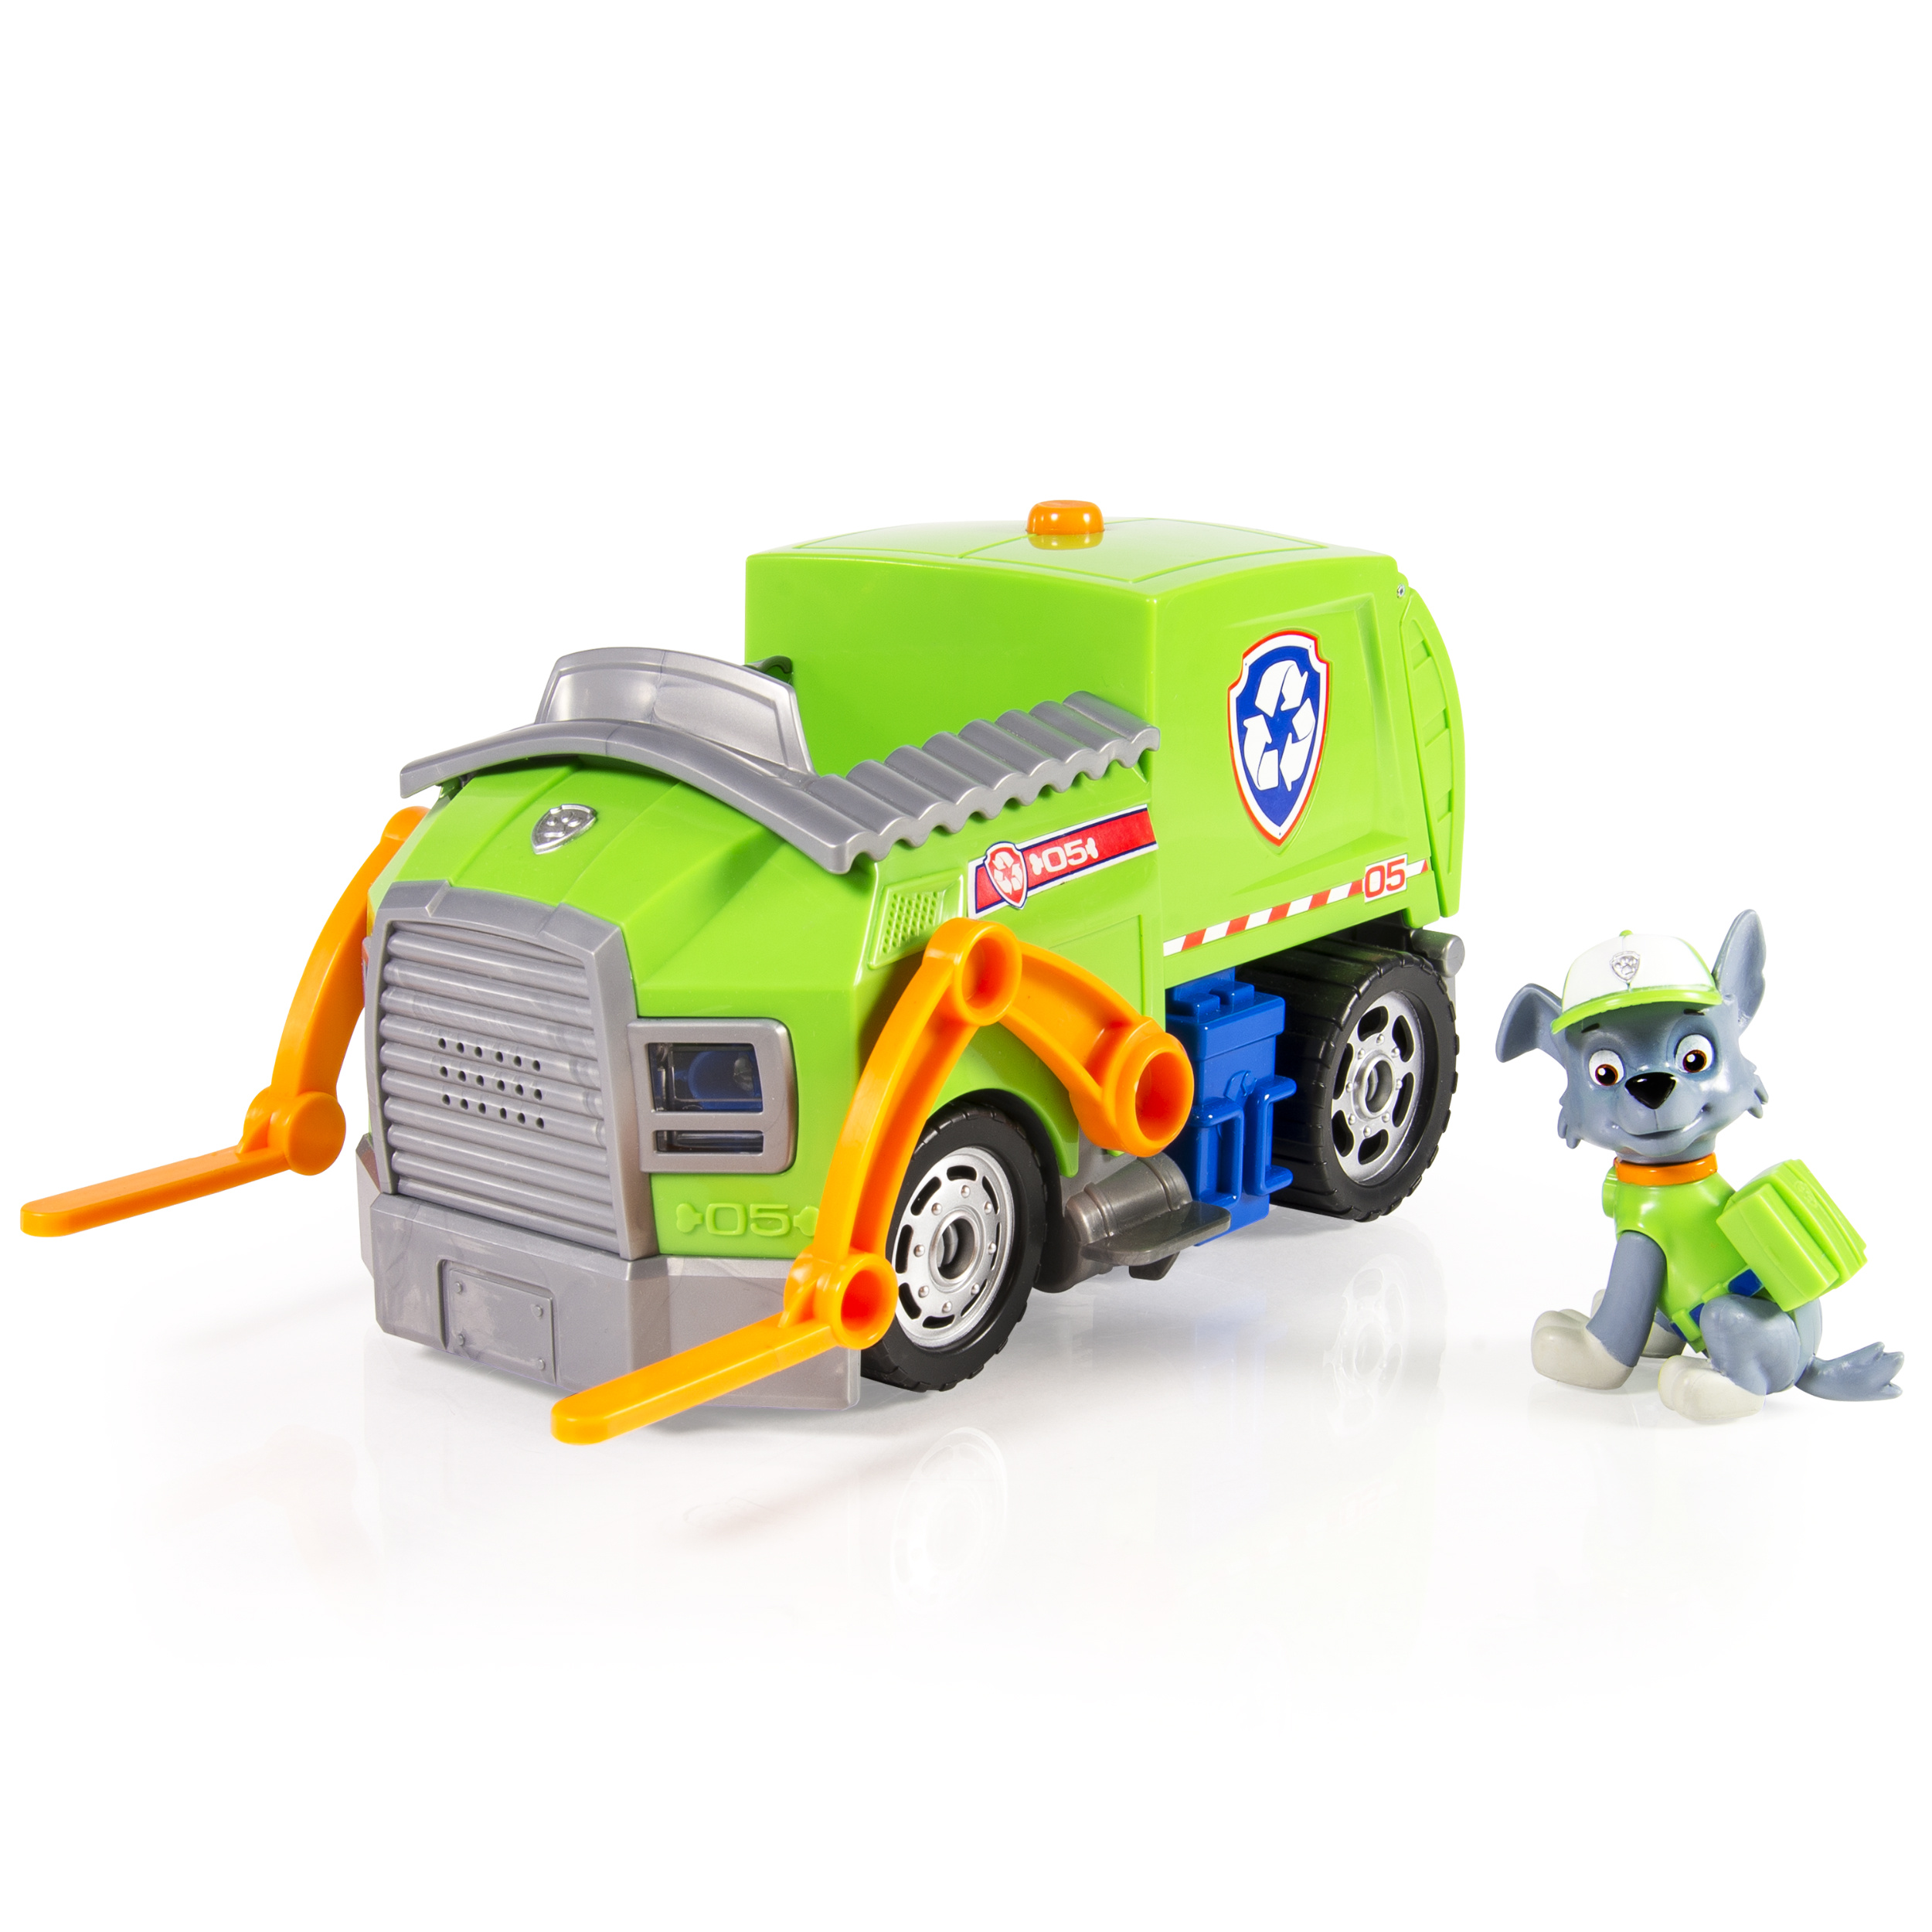 <p>Paw Patrol Rocky's Lights and Sounds Recycling Truck Vehicle and Figure< p> by Spin Master Ltd